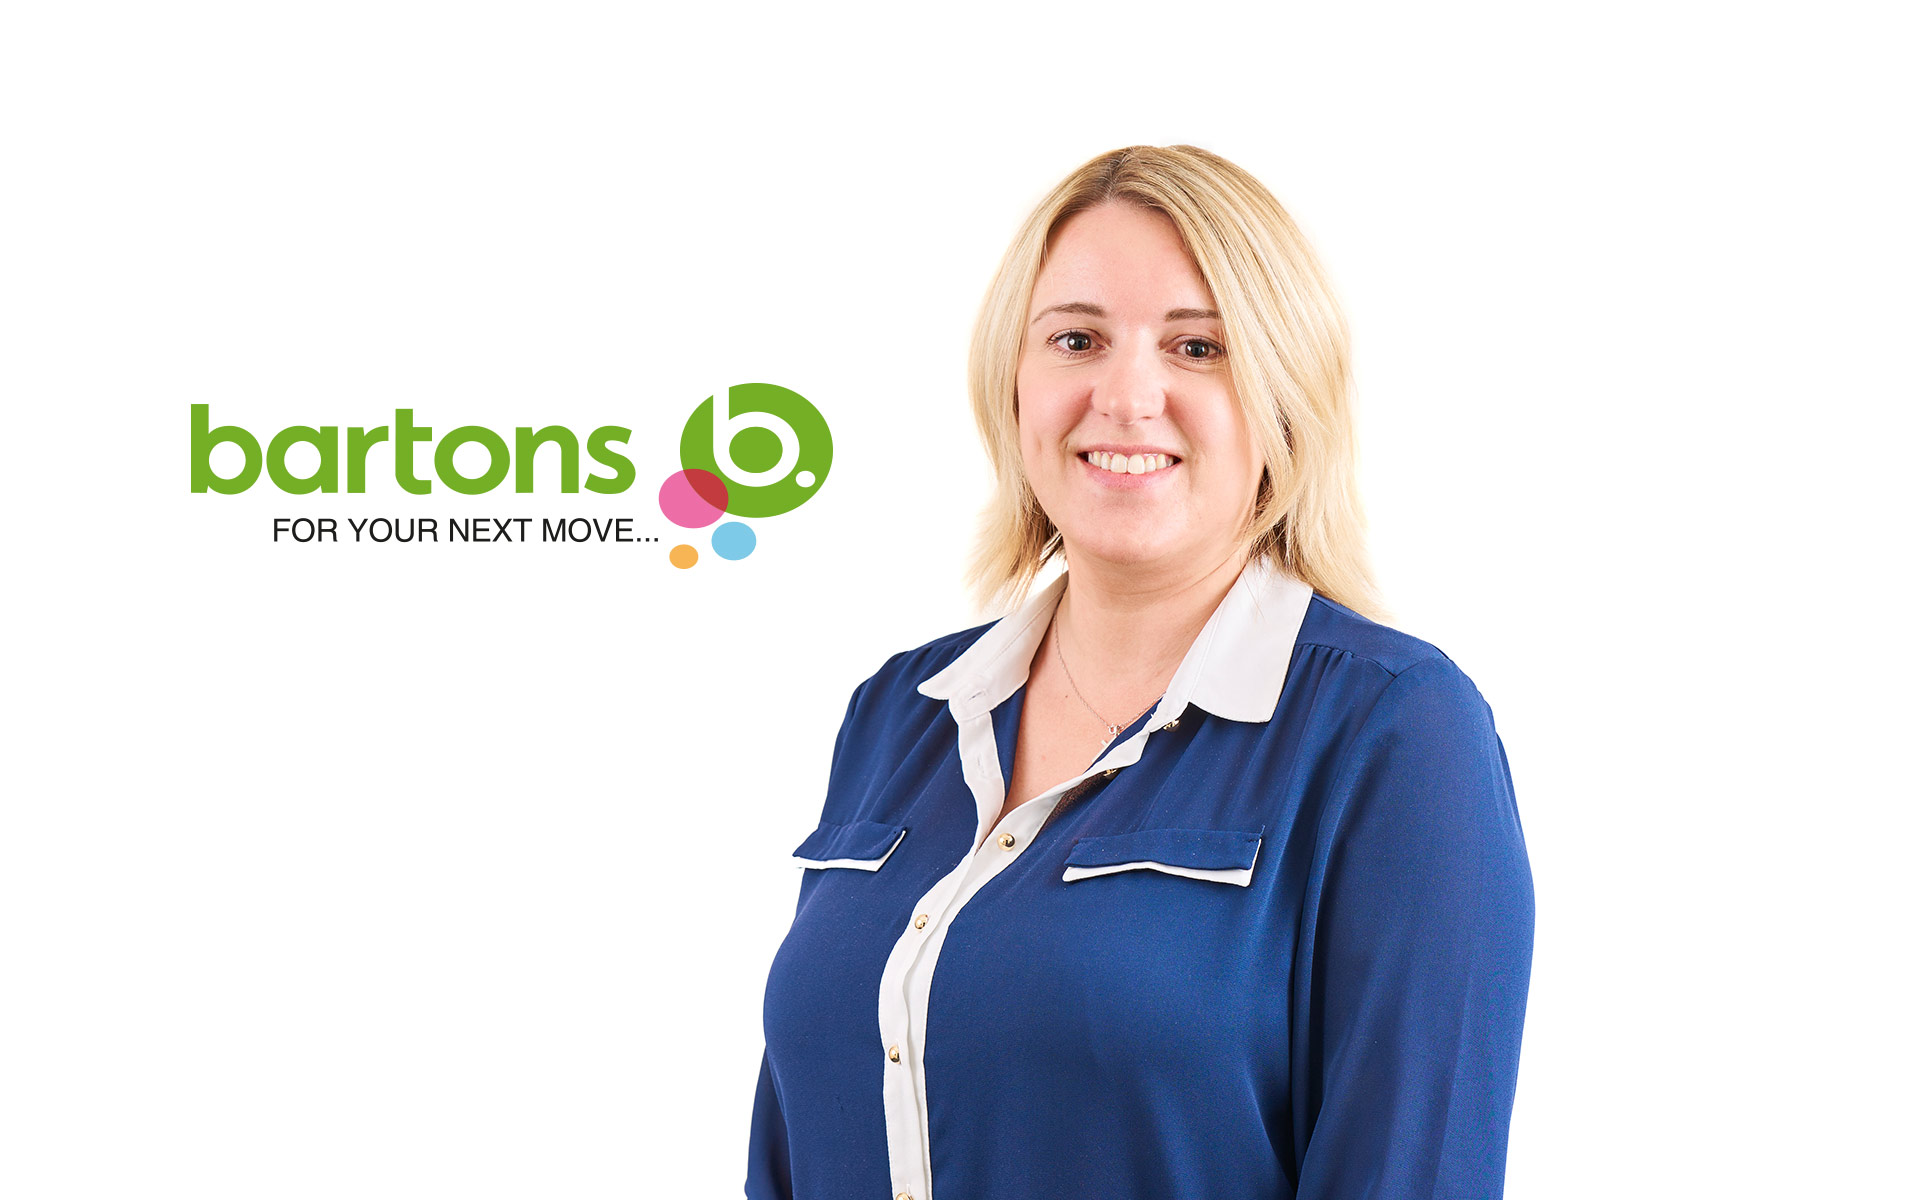 Bartons-IDEA-Rotherham-Photographer-Lisa